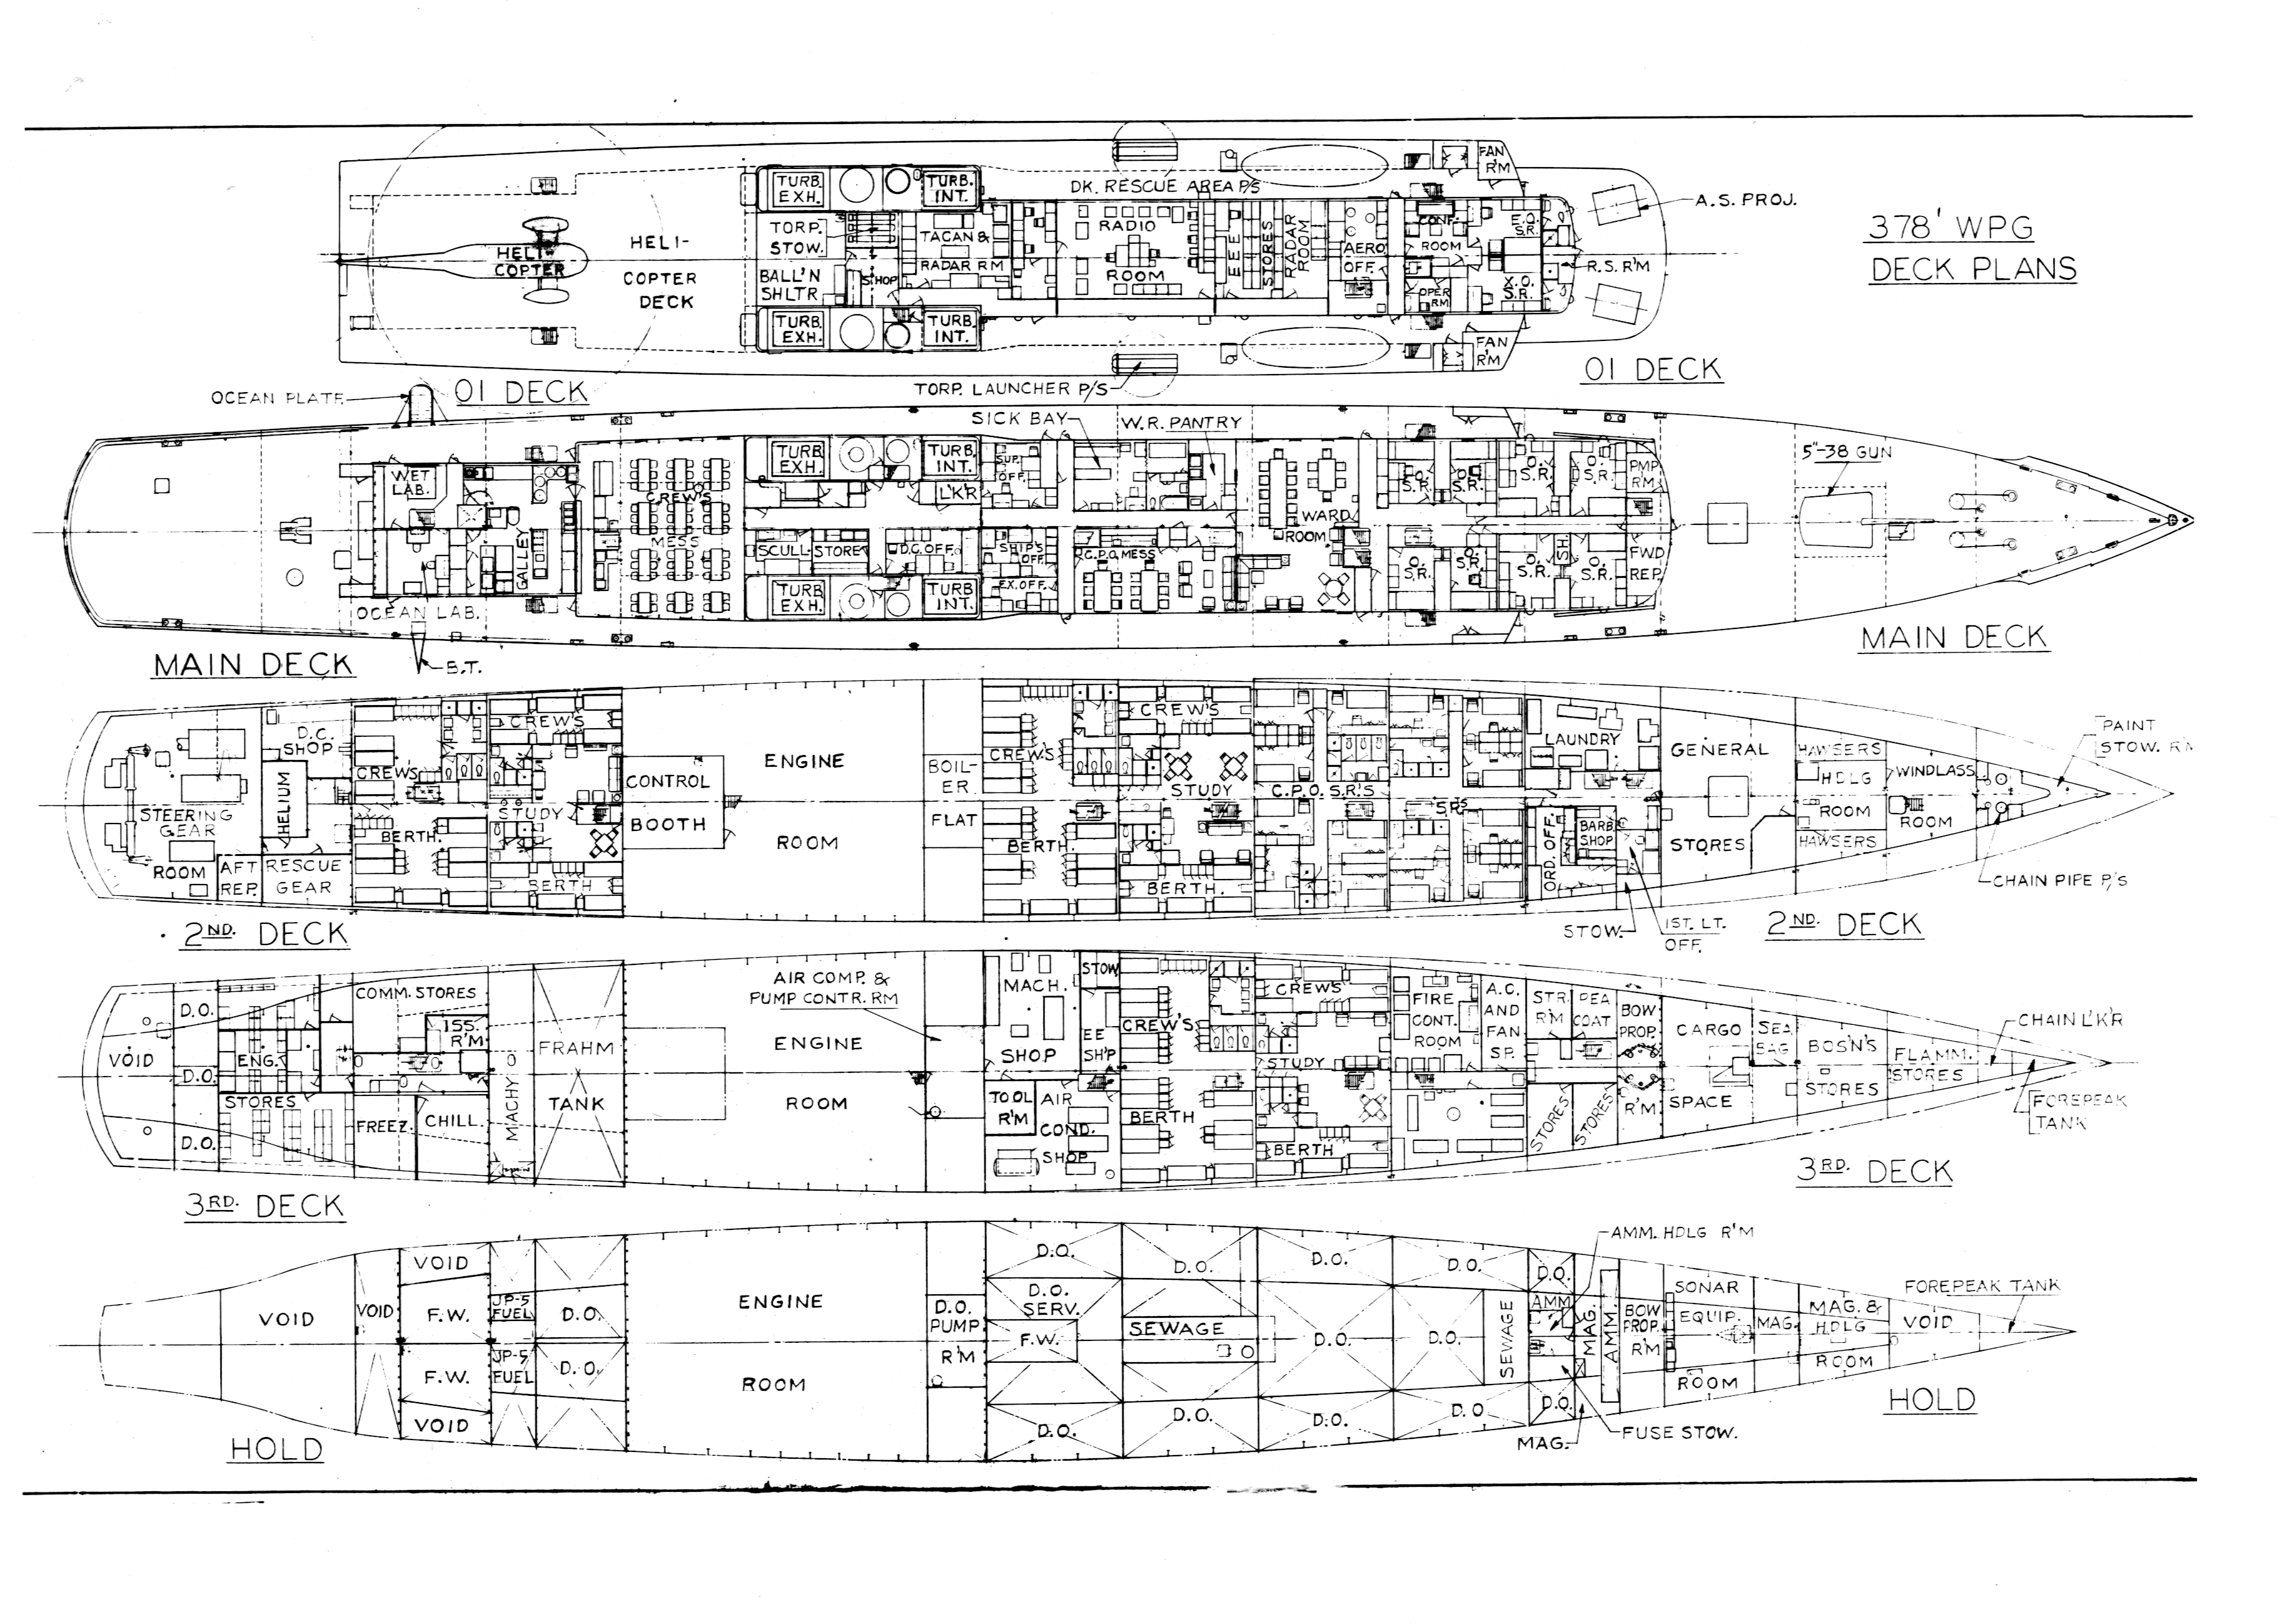 Warship deck plans sci fi warships deck plans warship for Drawing deck plans